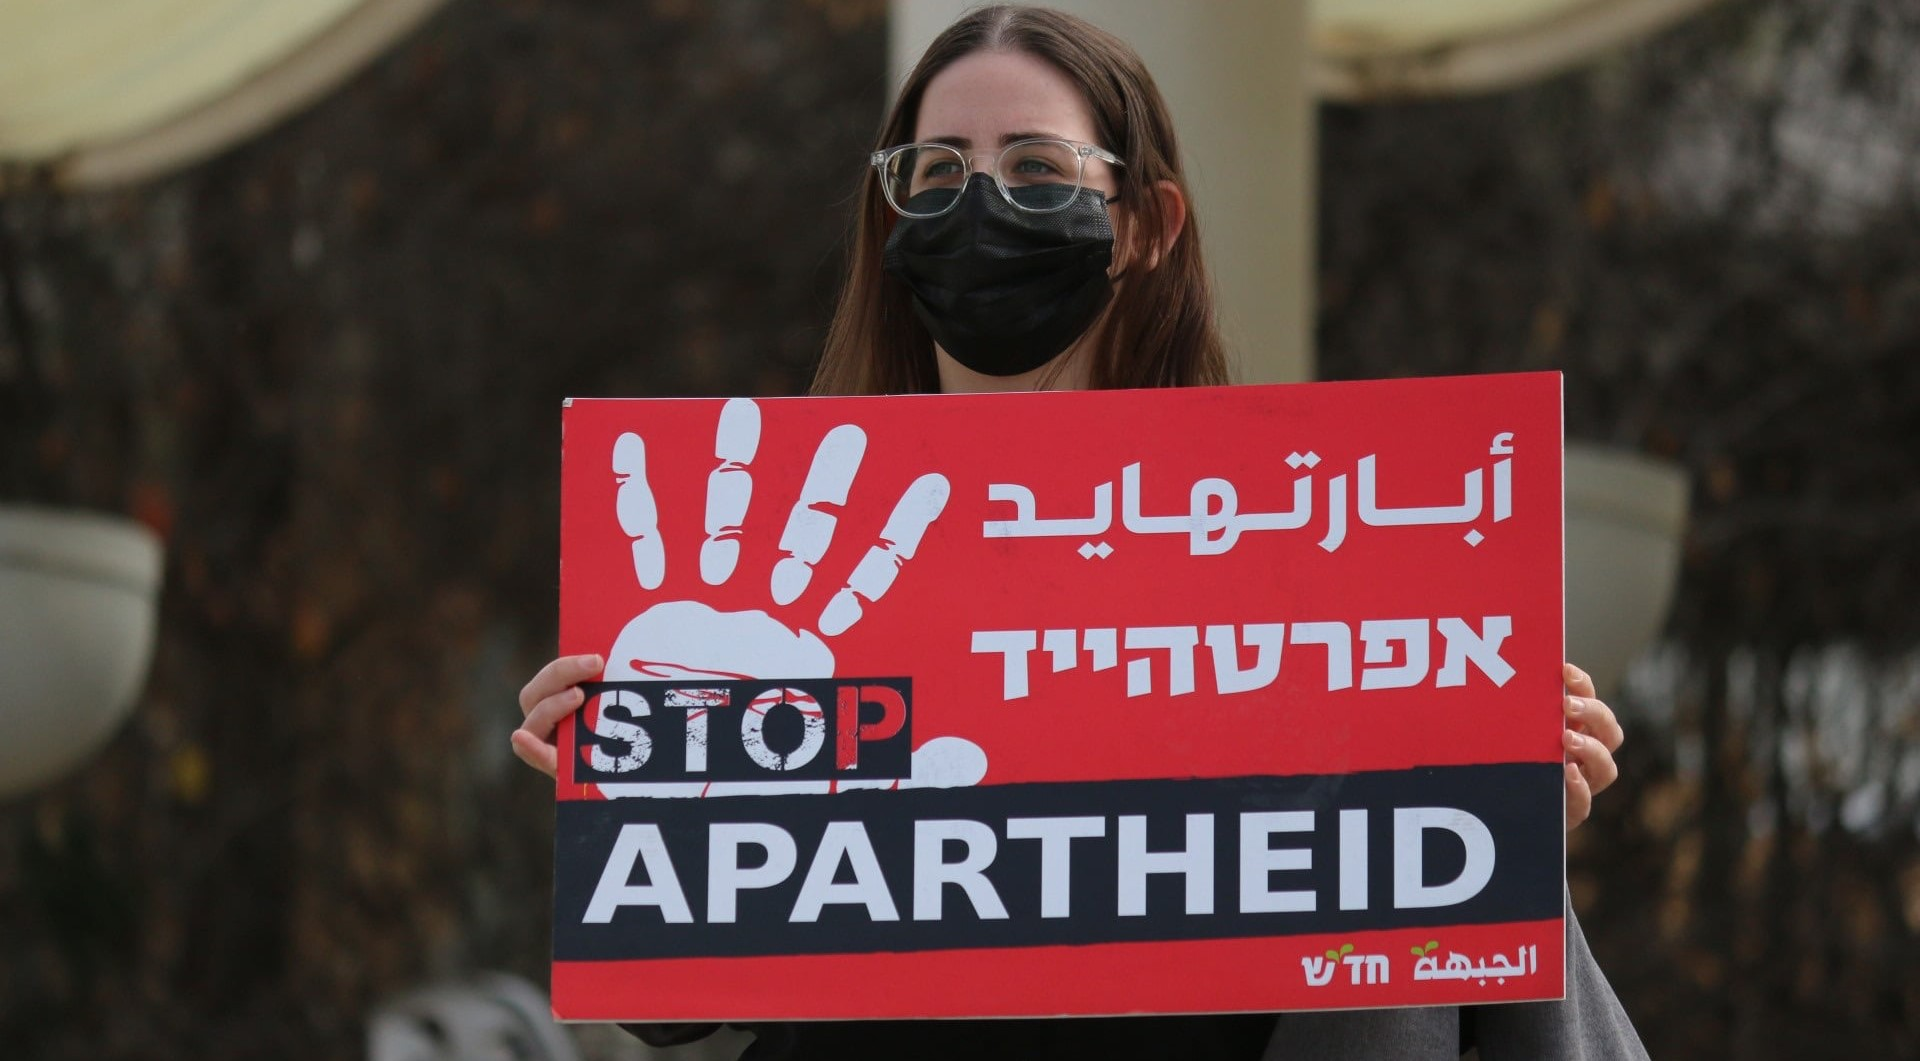 Hadash student caucus demonstration against the occupation of the Palestinian territories, Tel Aviv University, December 19, 2020